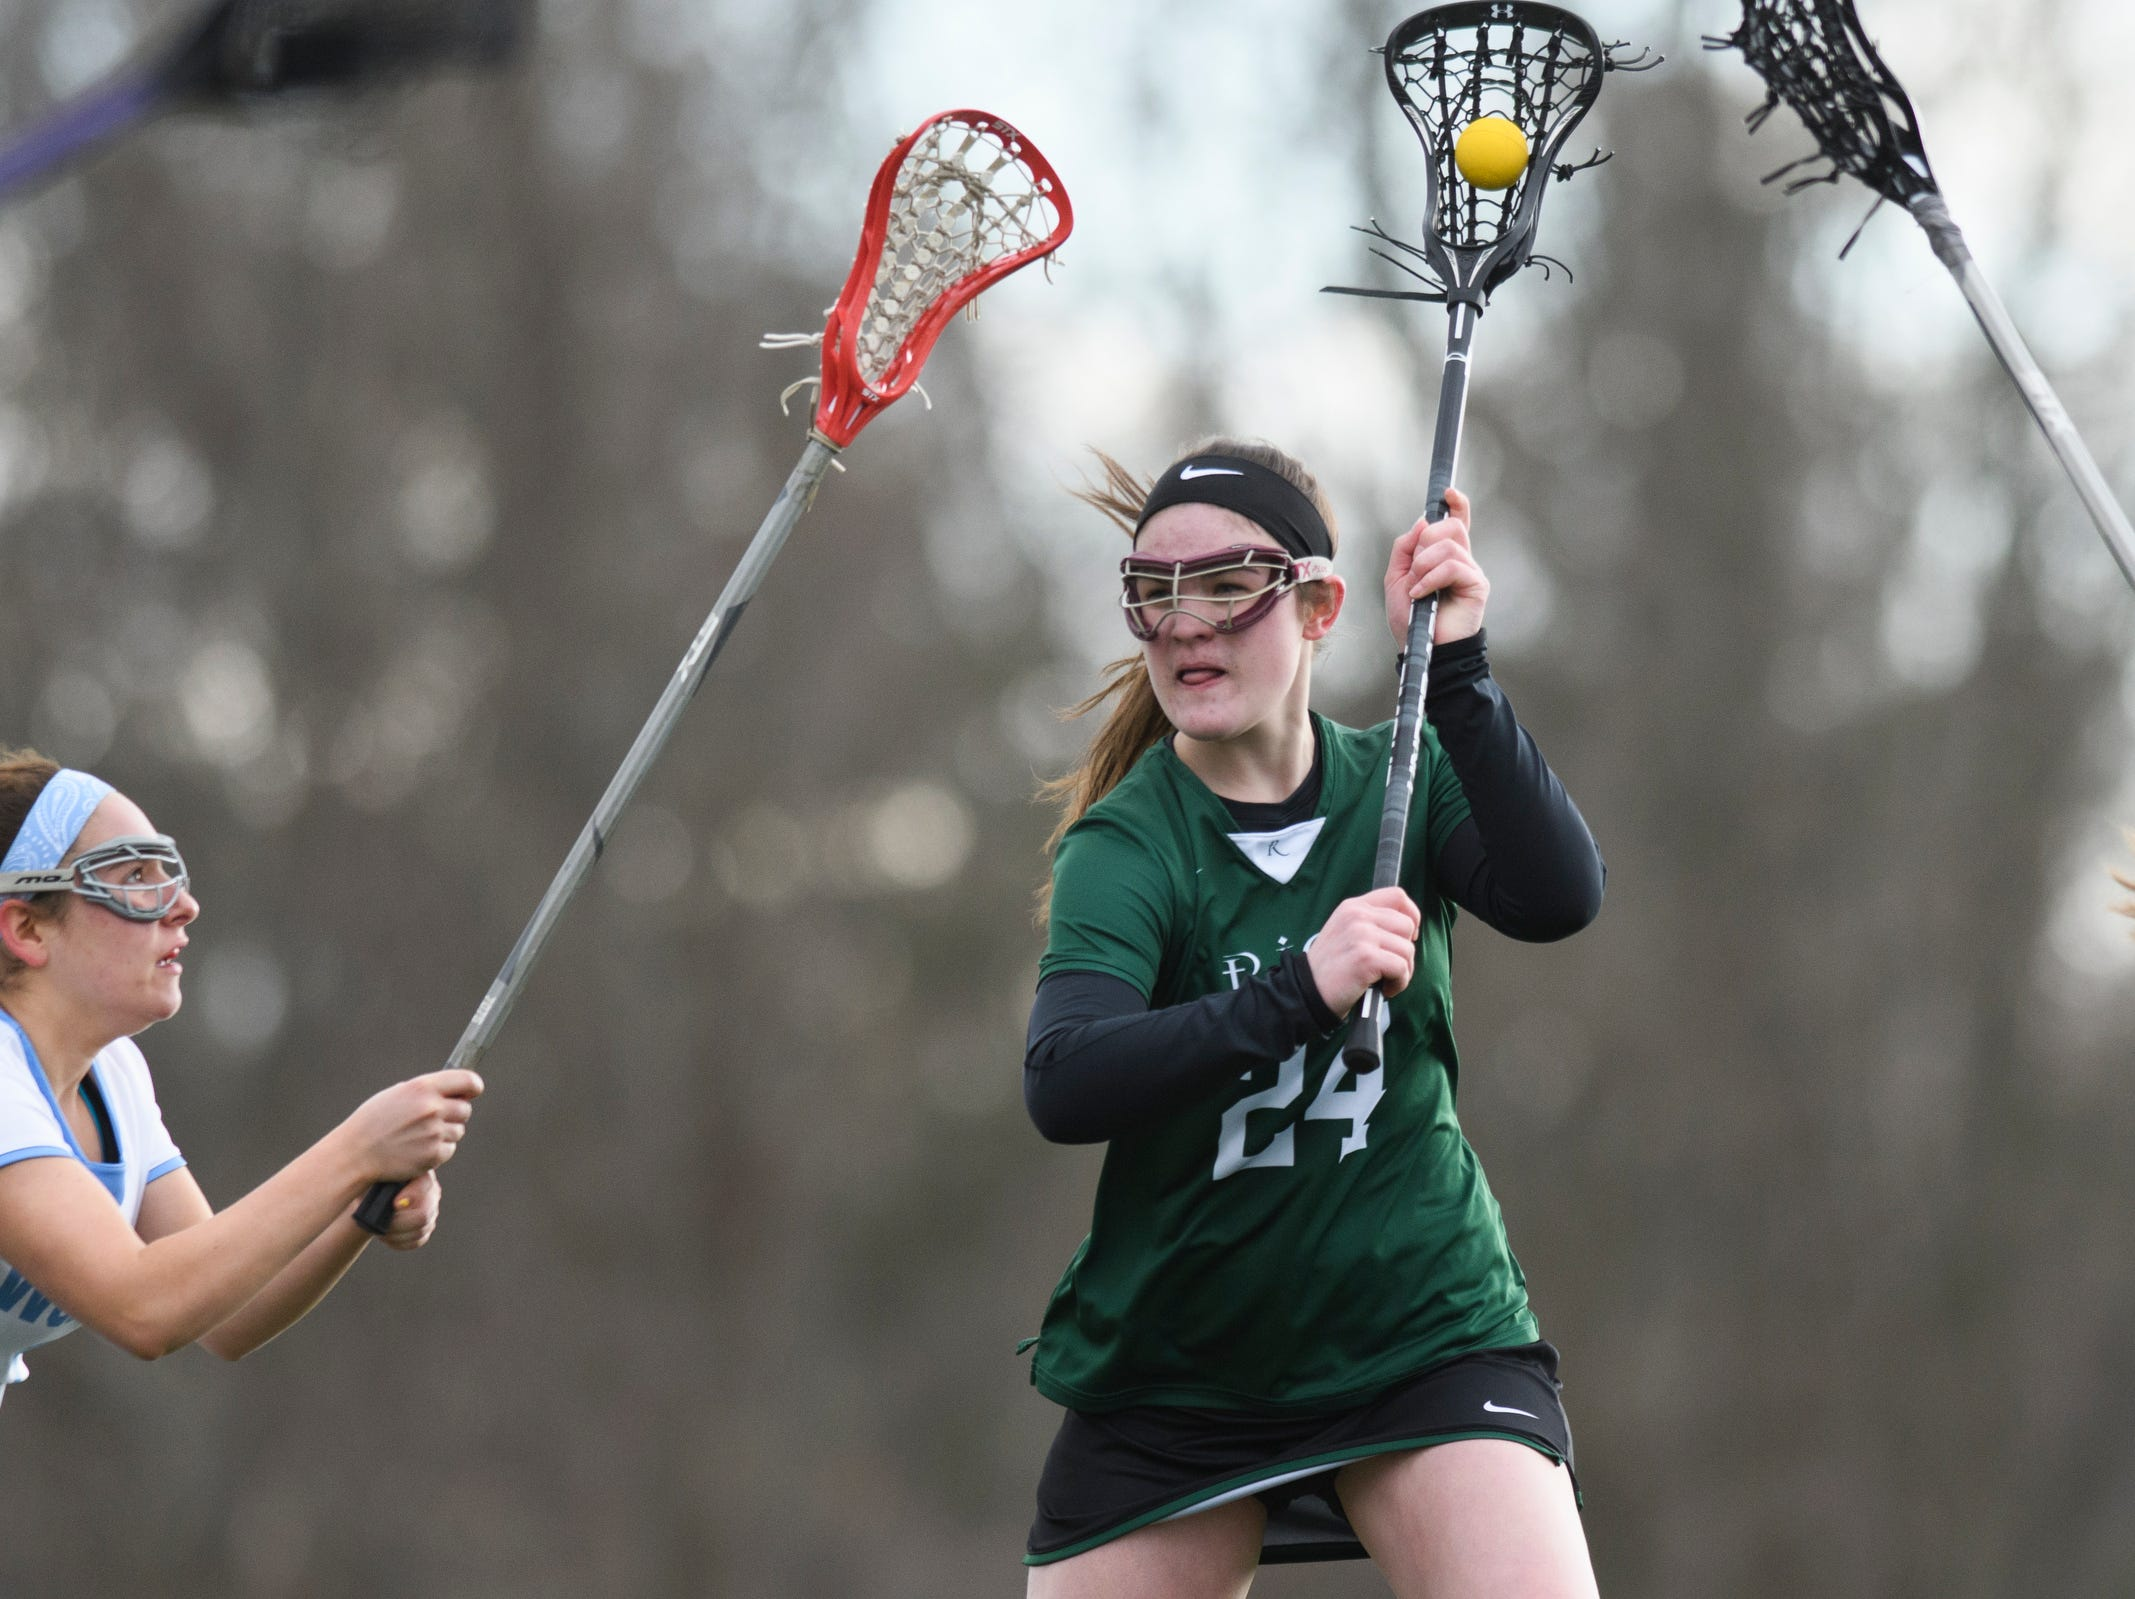 Rice's Annika Hanson (24) looks to shoot the ball during the girls lacrosse game between the Rice Green Knights and the South Burlington Wolves at South Burlington High School on Tuesday afternoon April 16, 2019 in South Burlington, Vermont.